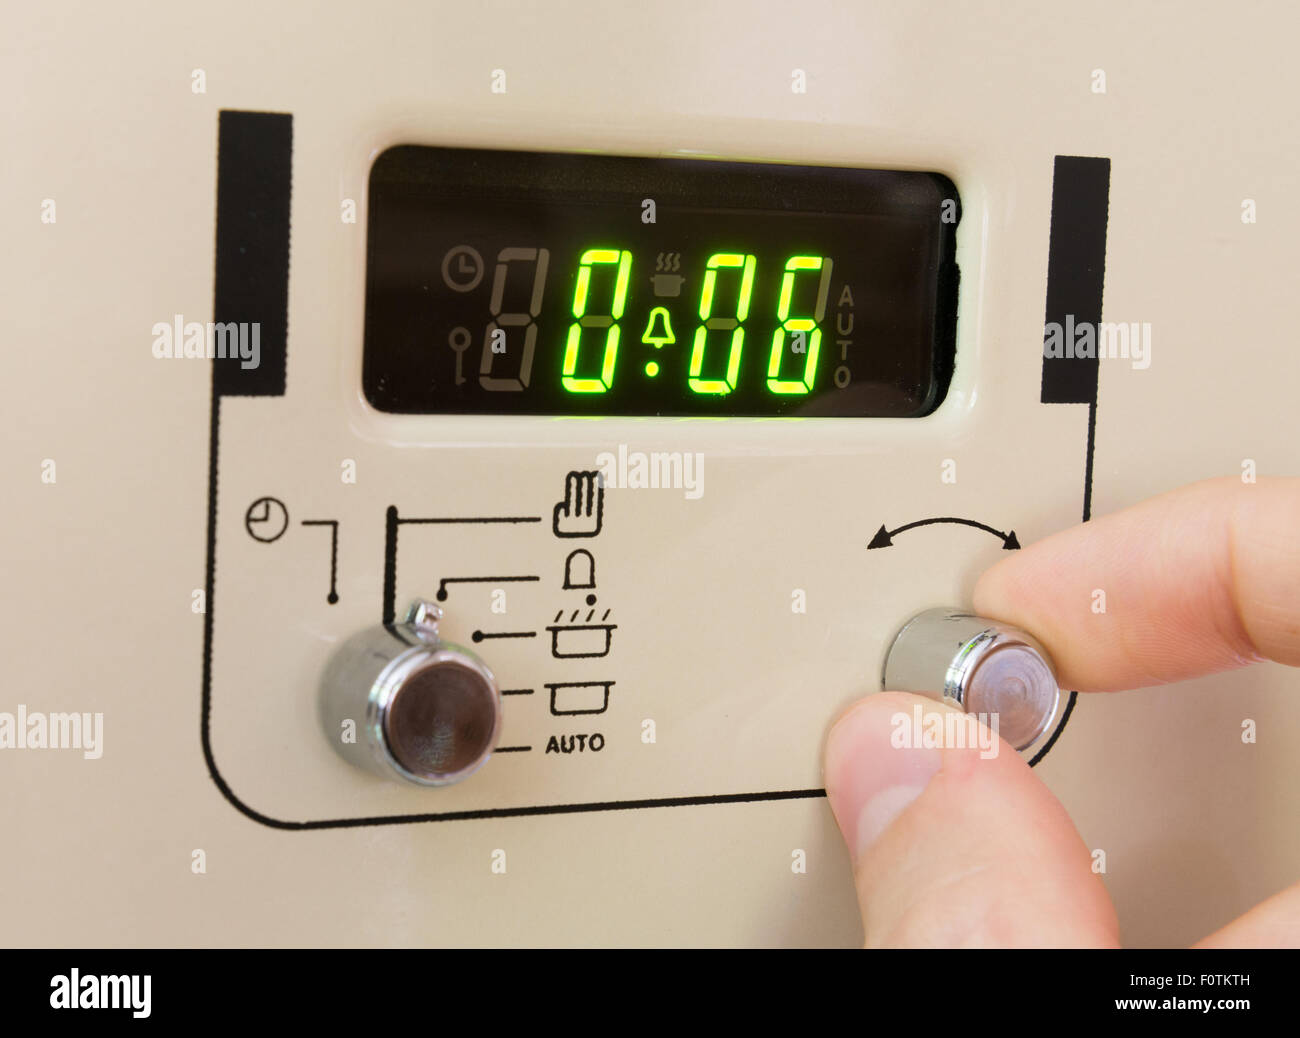 Setting a cooker timer to 6 minutes - Stock Image